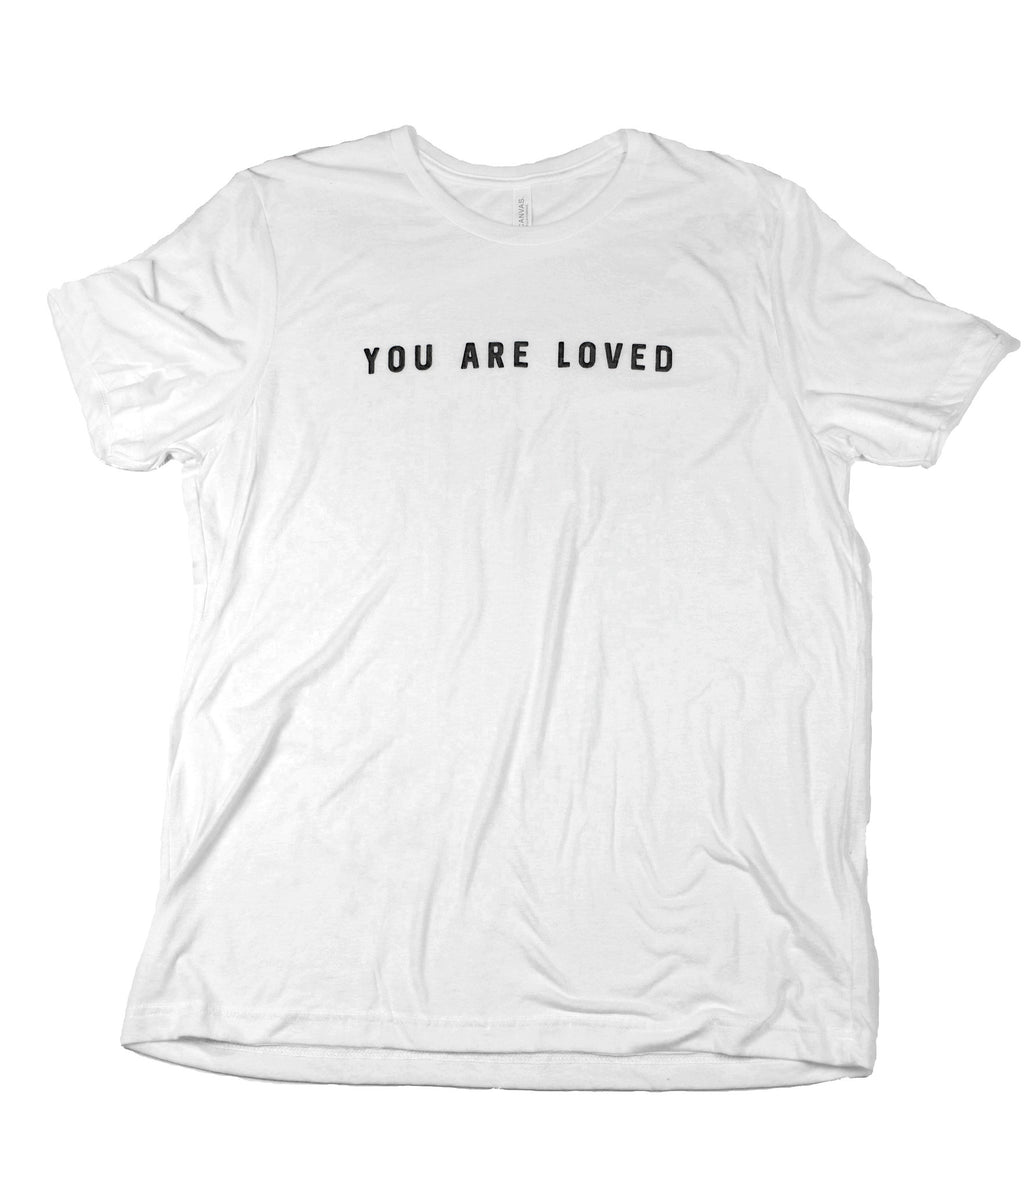 YOU ARE LOVED WHITE T-SHIRT